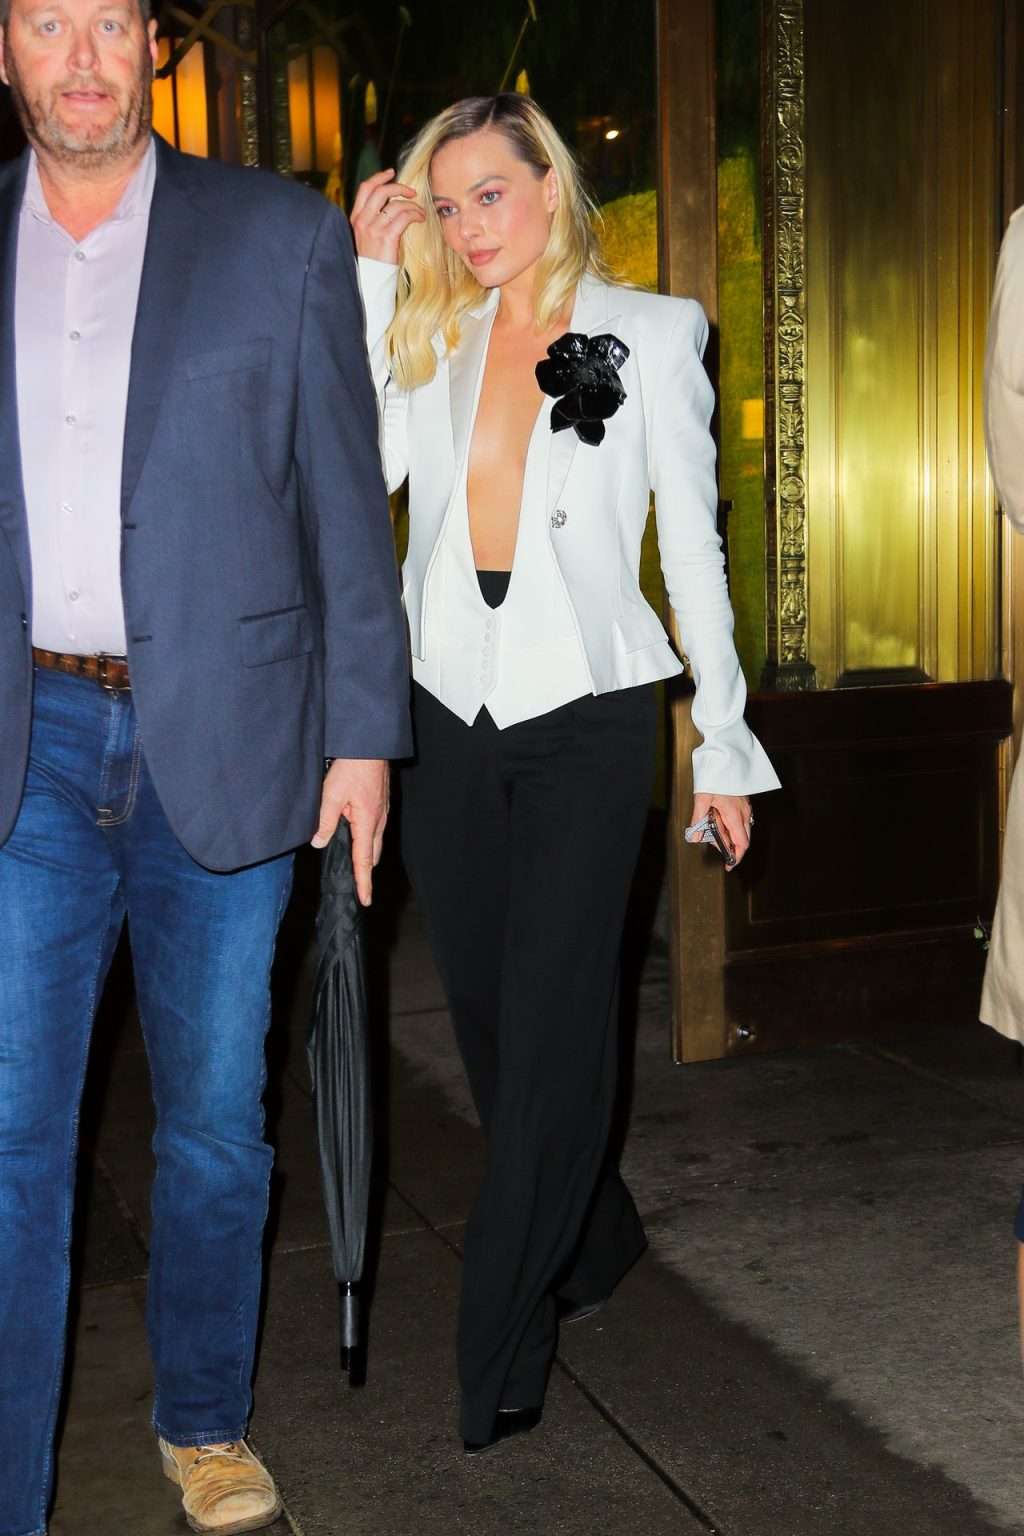 Margot Robbie Shows Off Ample Cleavage Leaving The Polo Bar in New York (34 Photos)